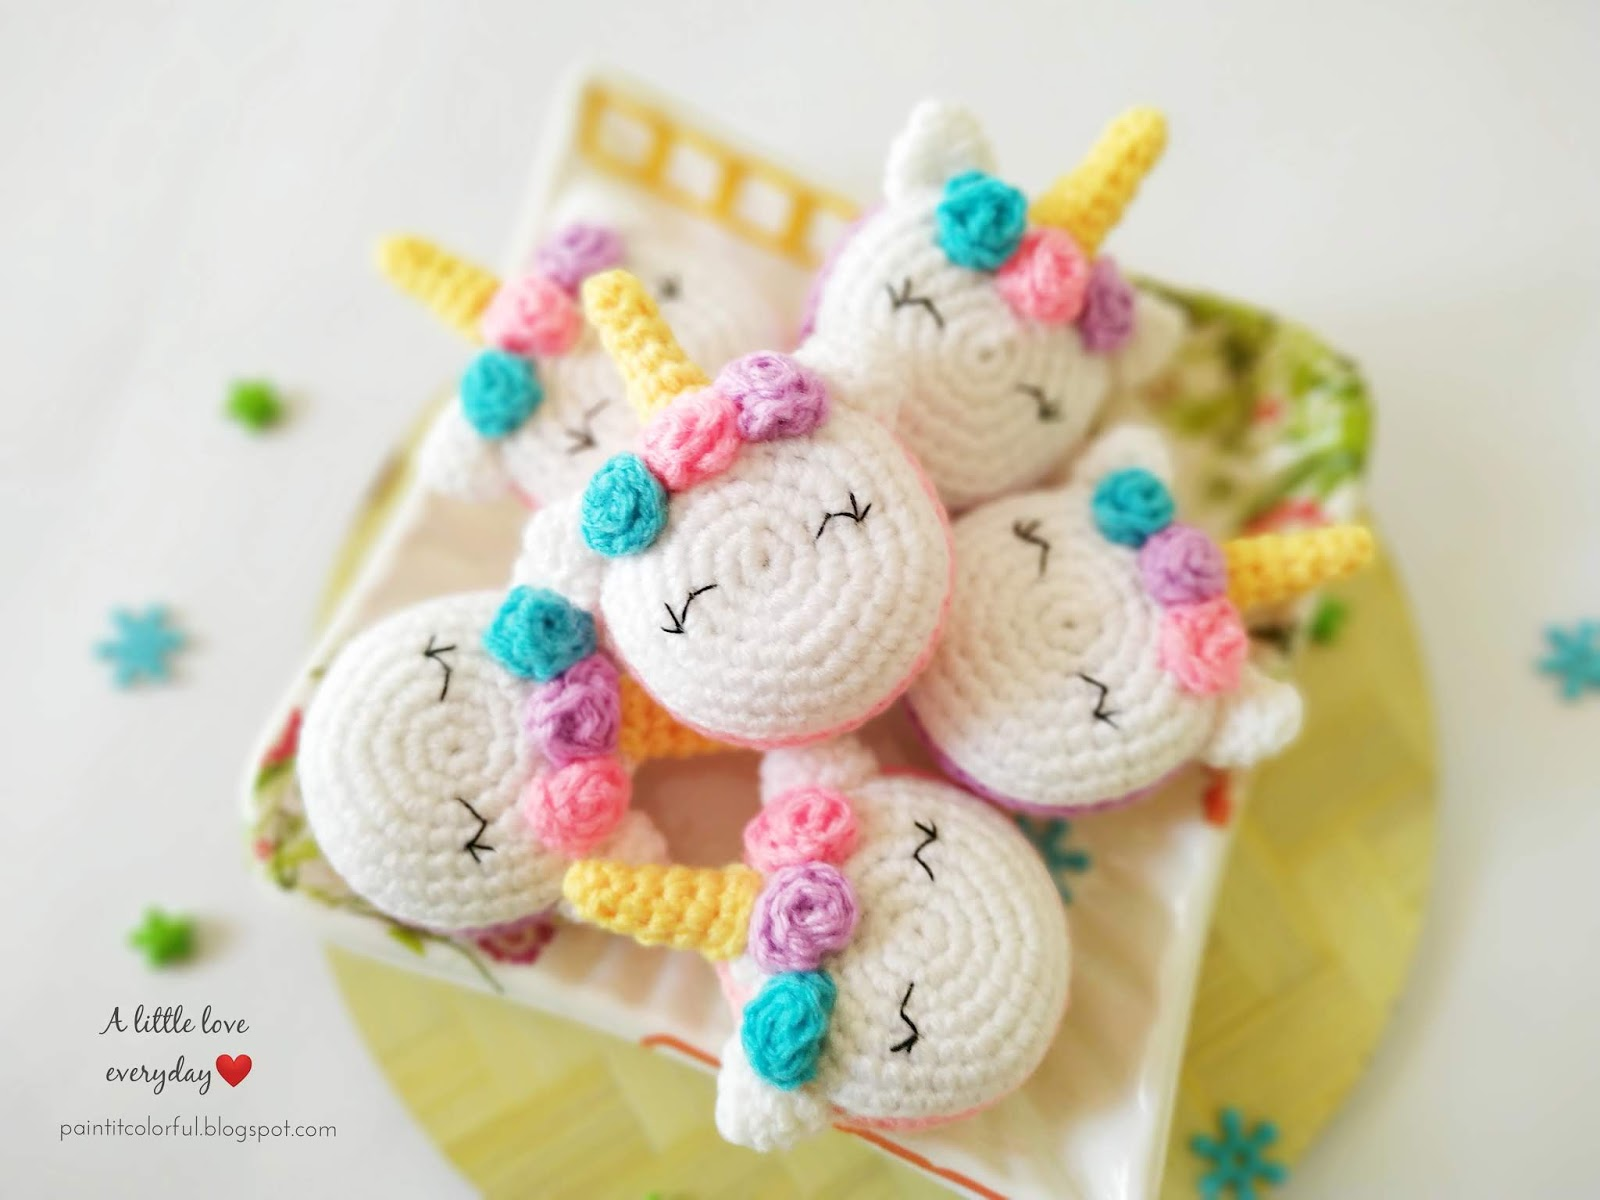 Baby unicorn amigurumi pattern - Amigurumi Today | 1200x1600